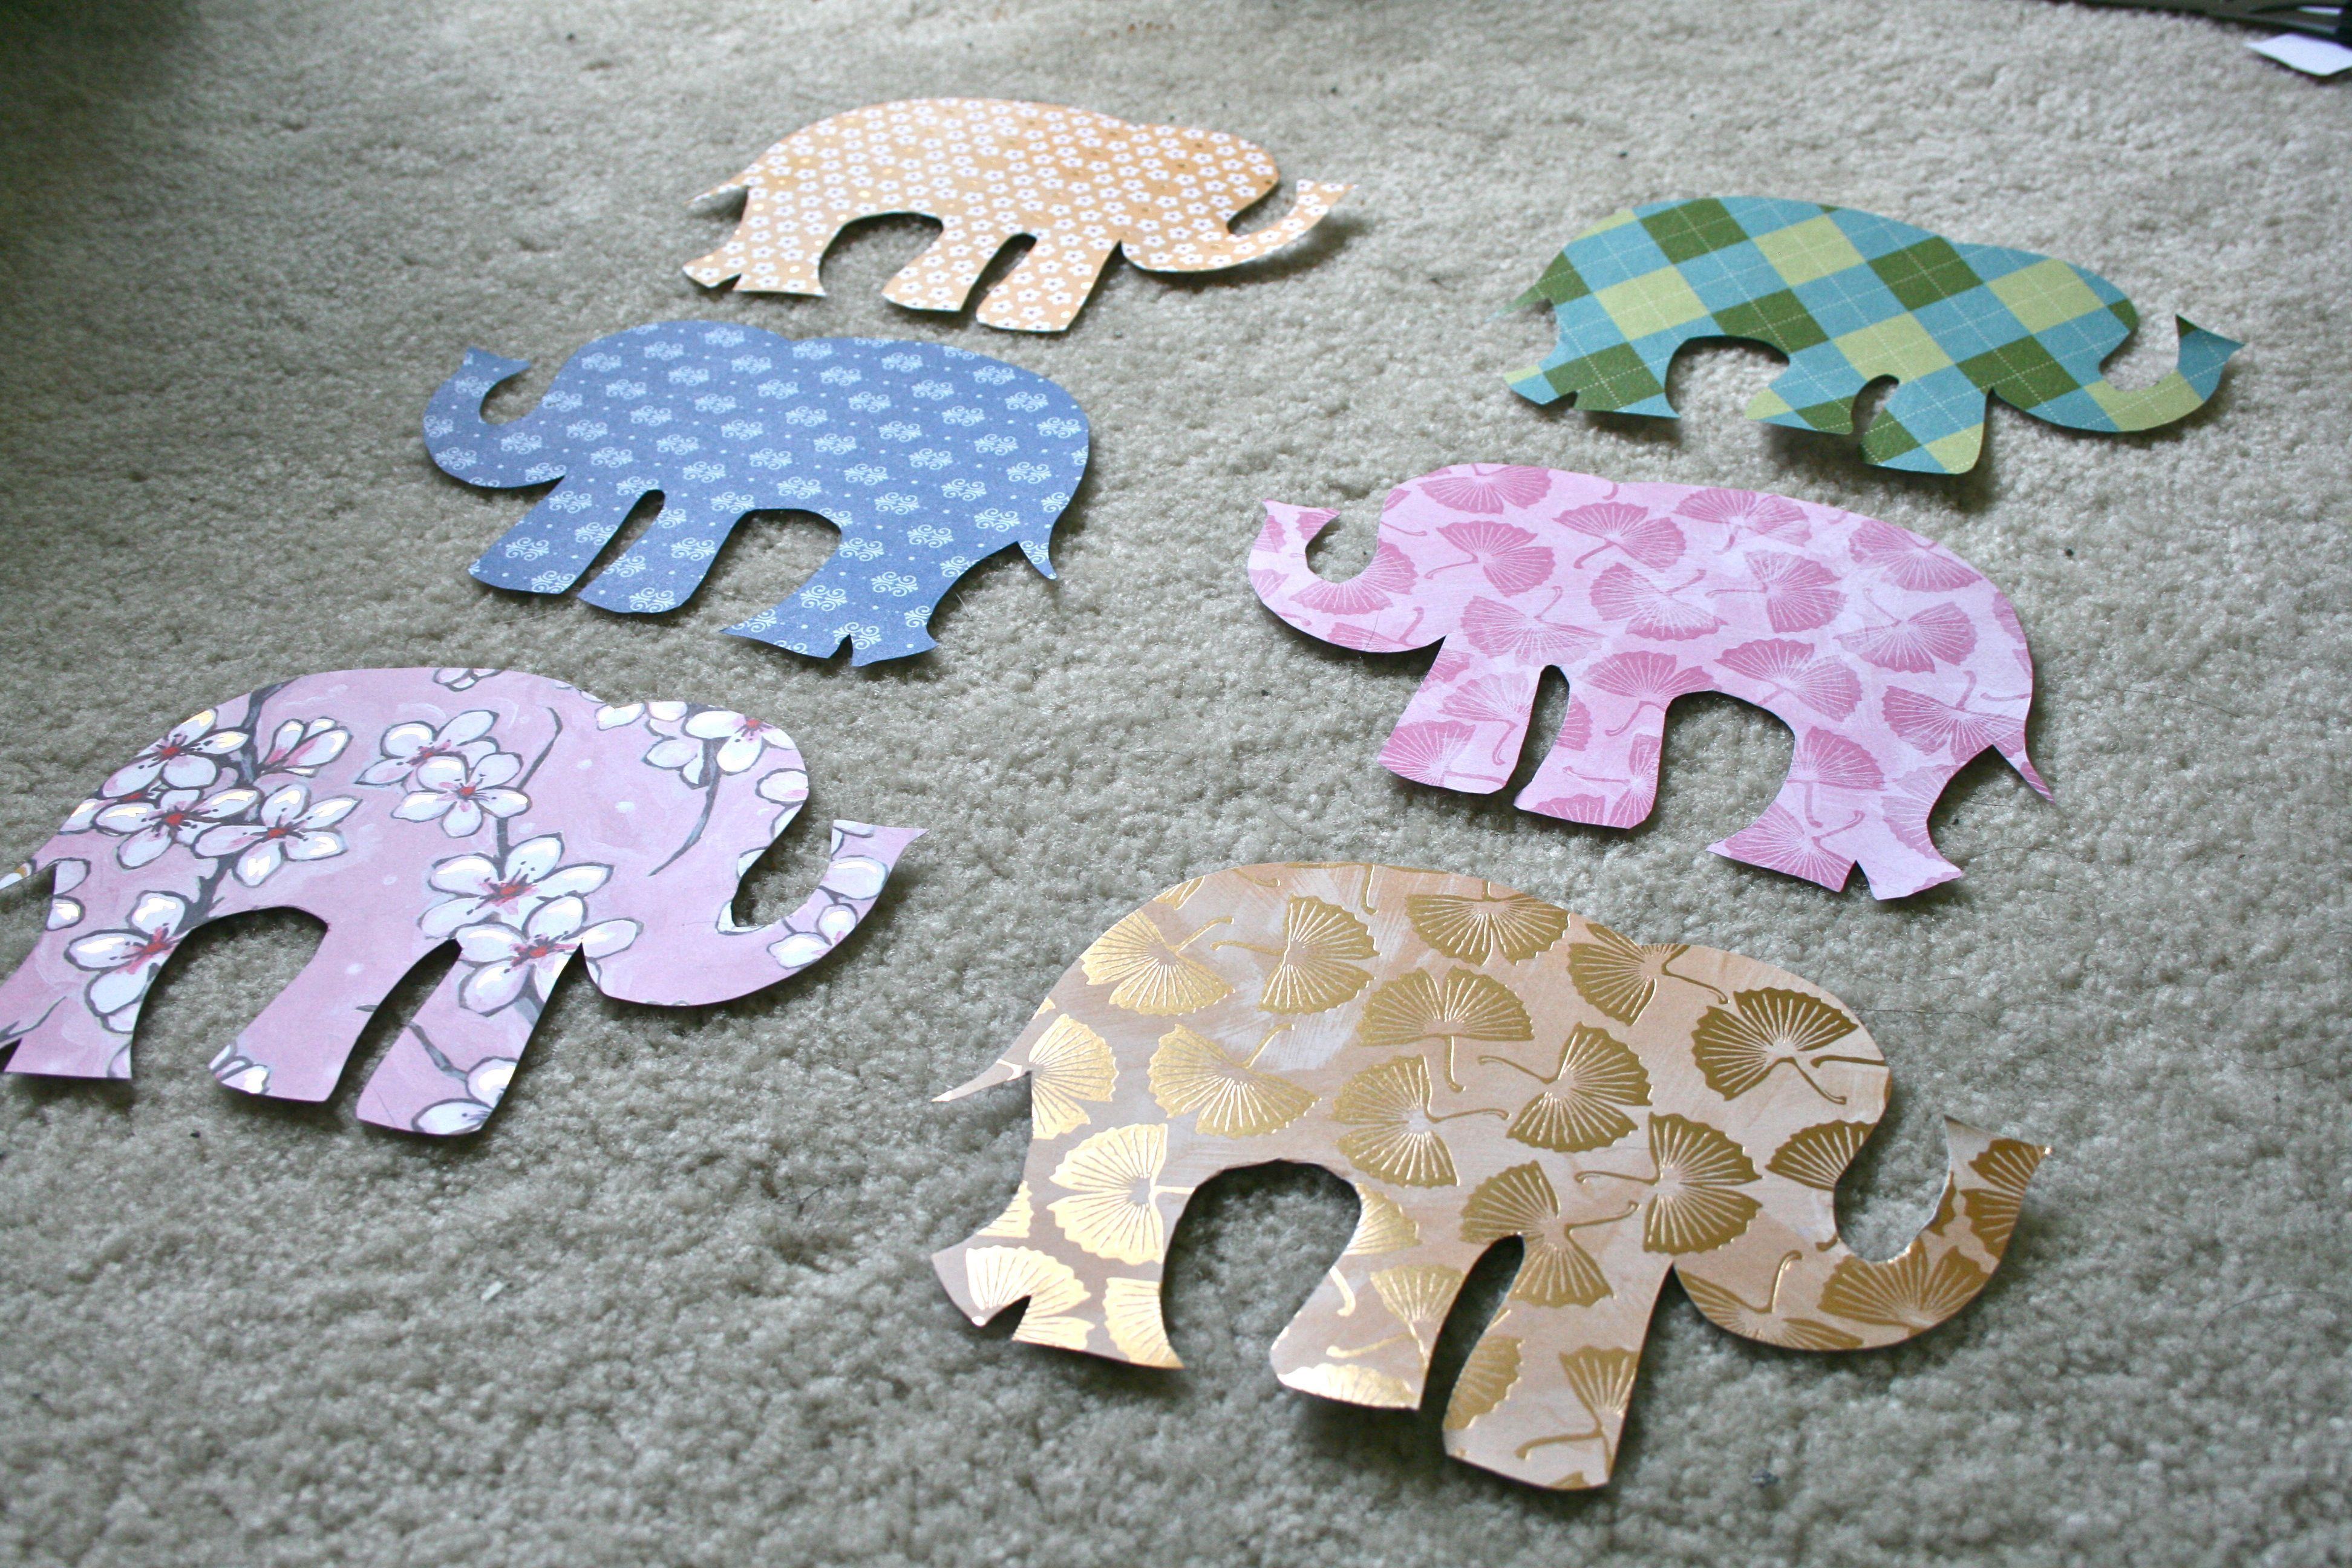 Oh And You May Notice That Some Of The Elephants Are Facing A Different Direction I Thought It Would Be Fun To Give Finished Collection An